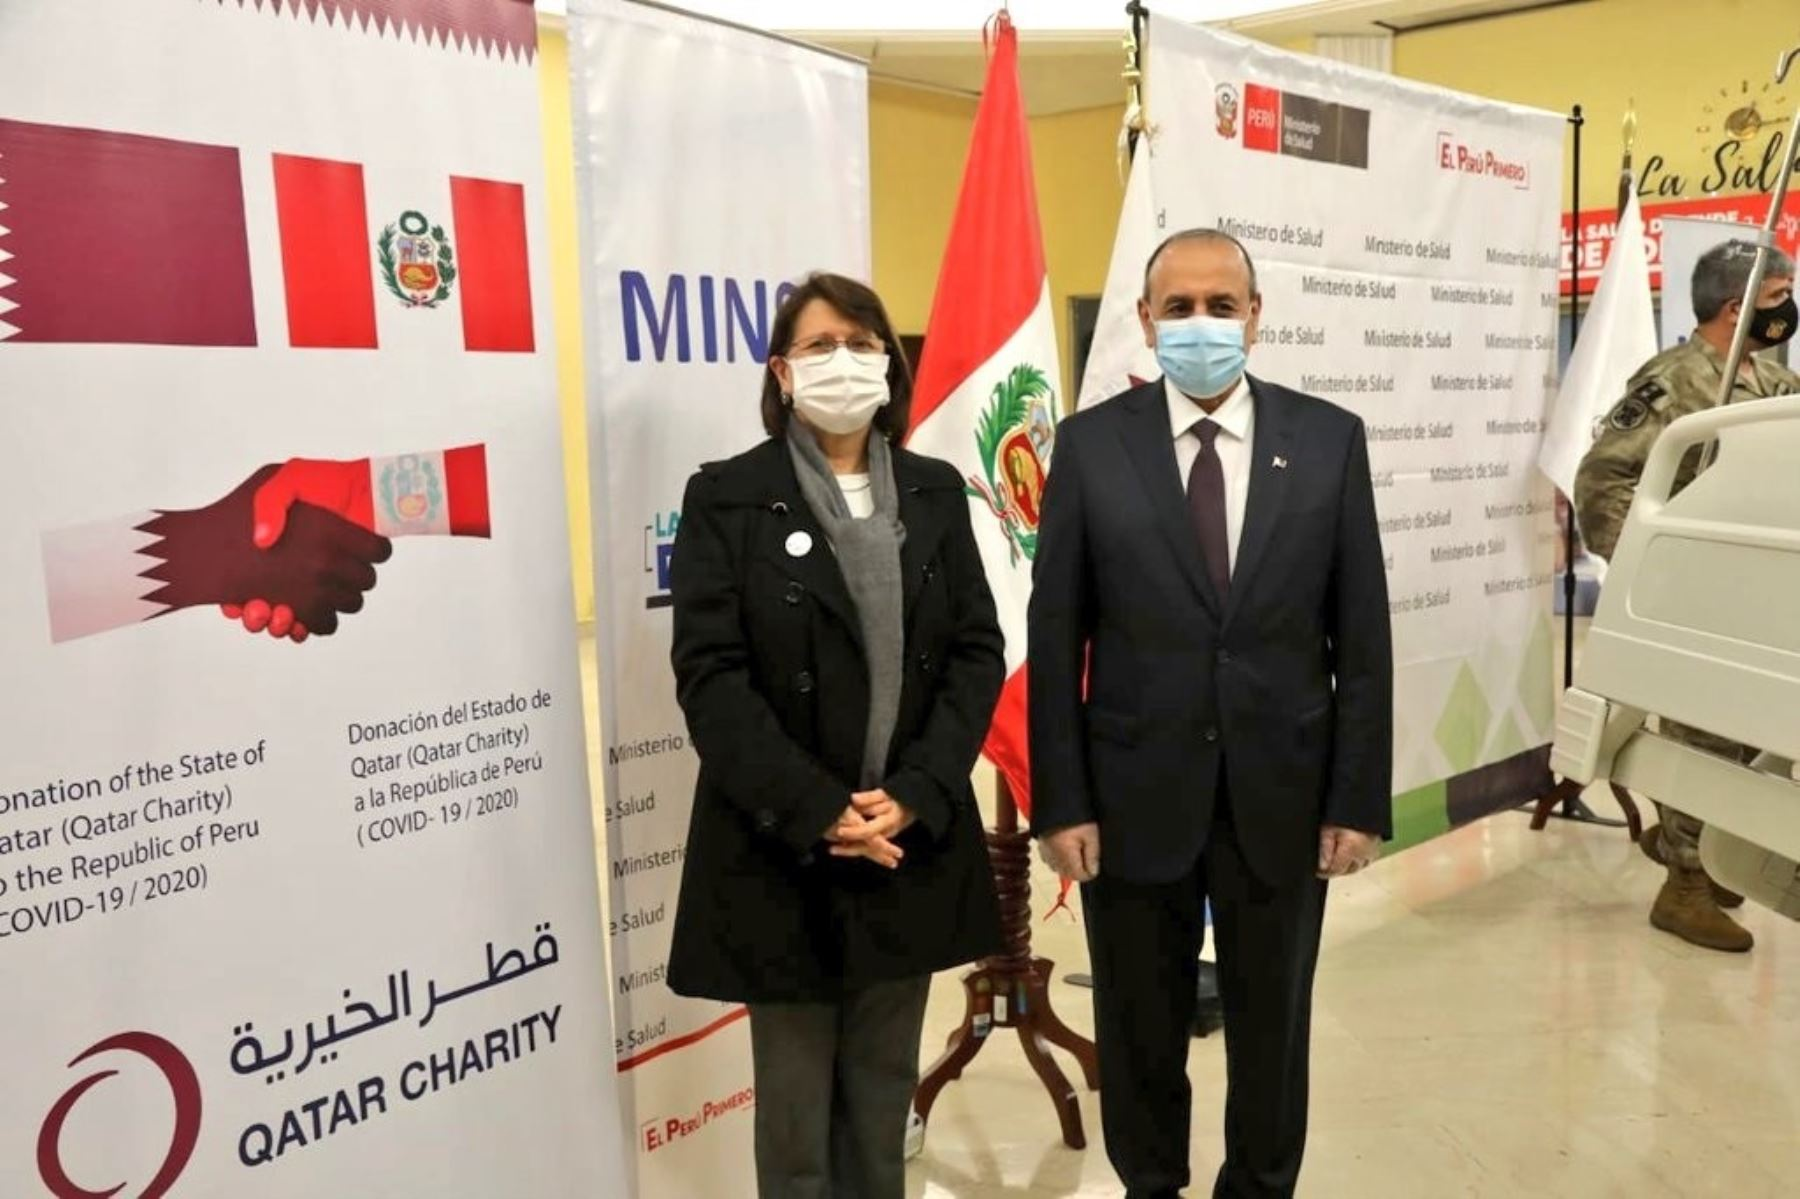 Qatar donates ICU beds and personal protective equipment to Peru. Photo: ANDINA/Minsa